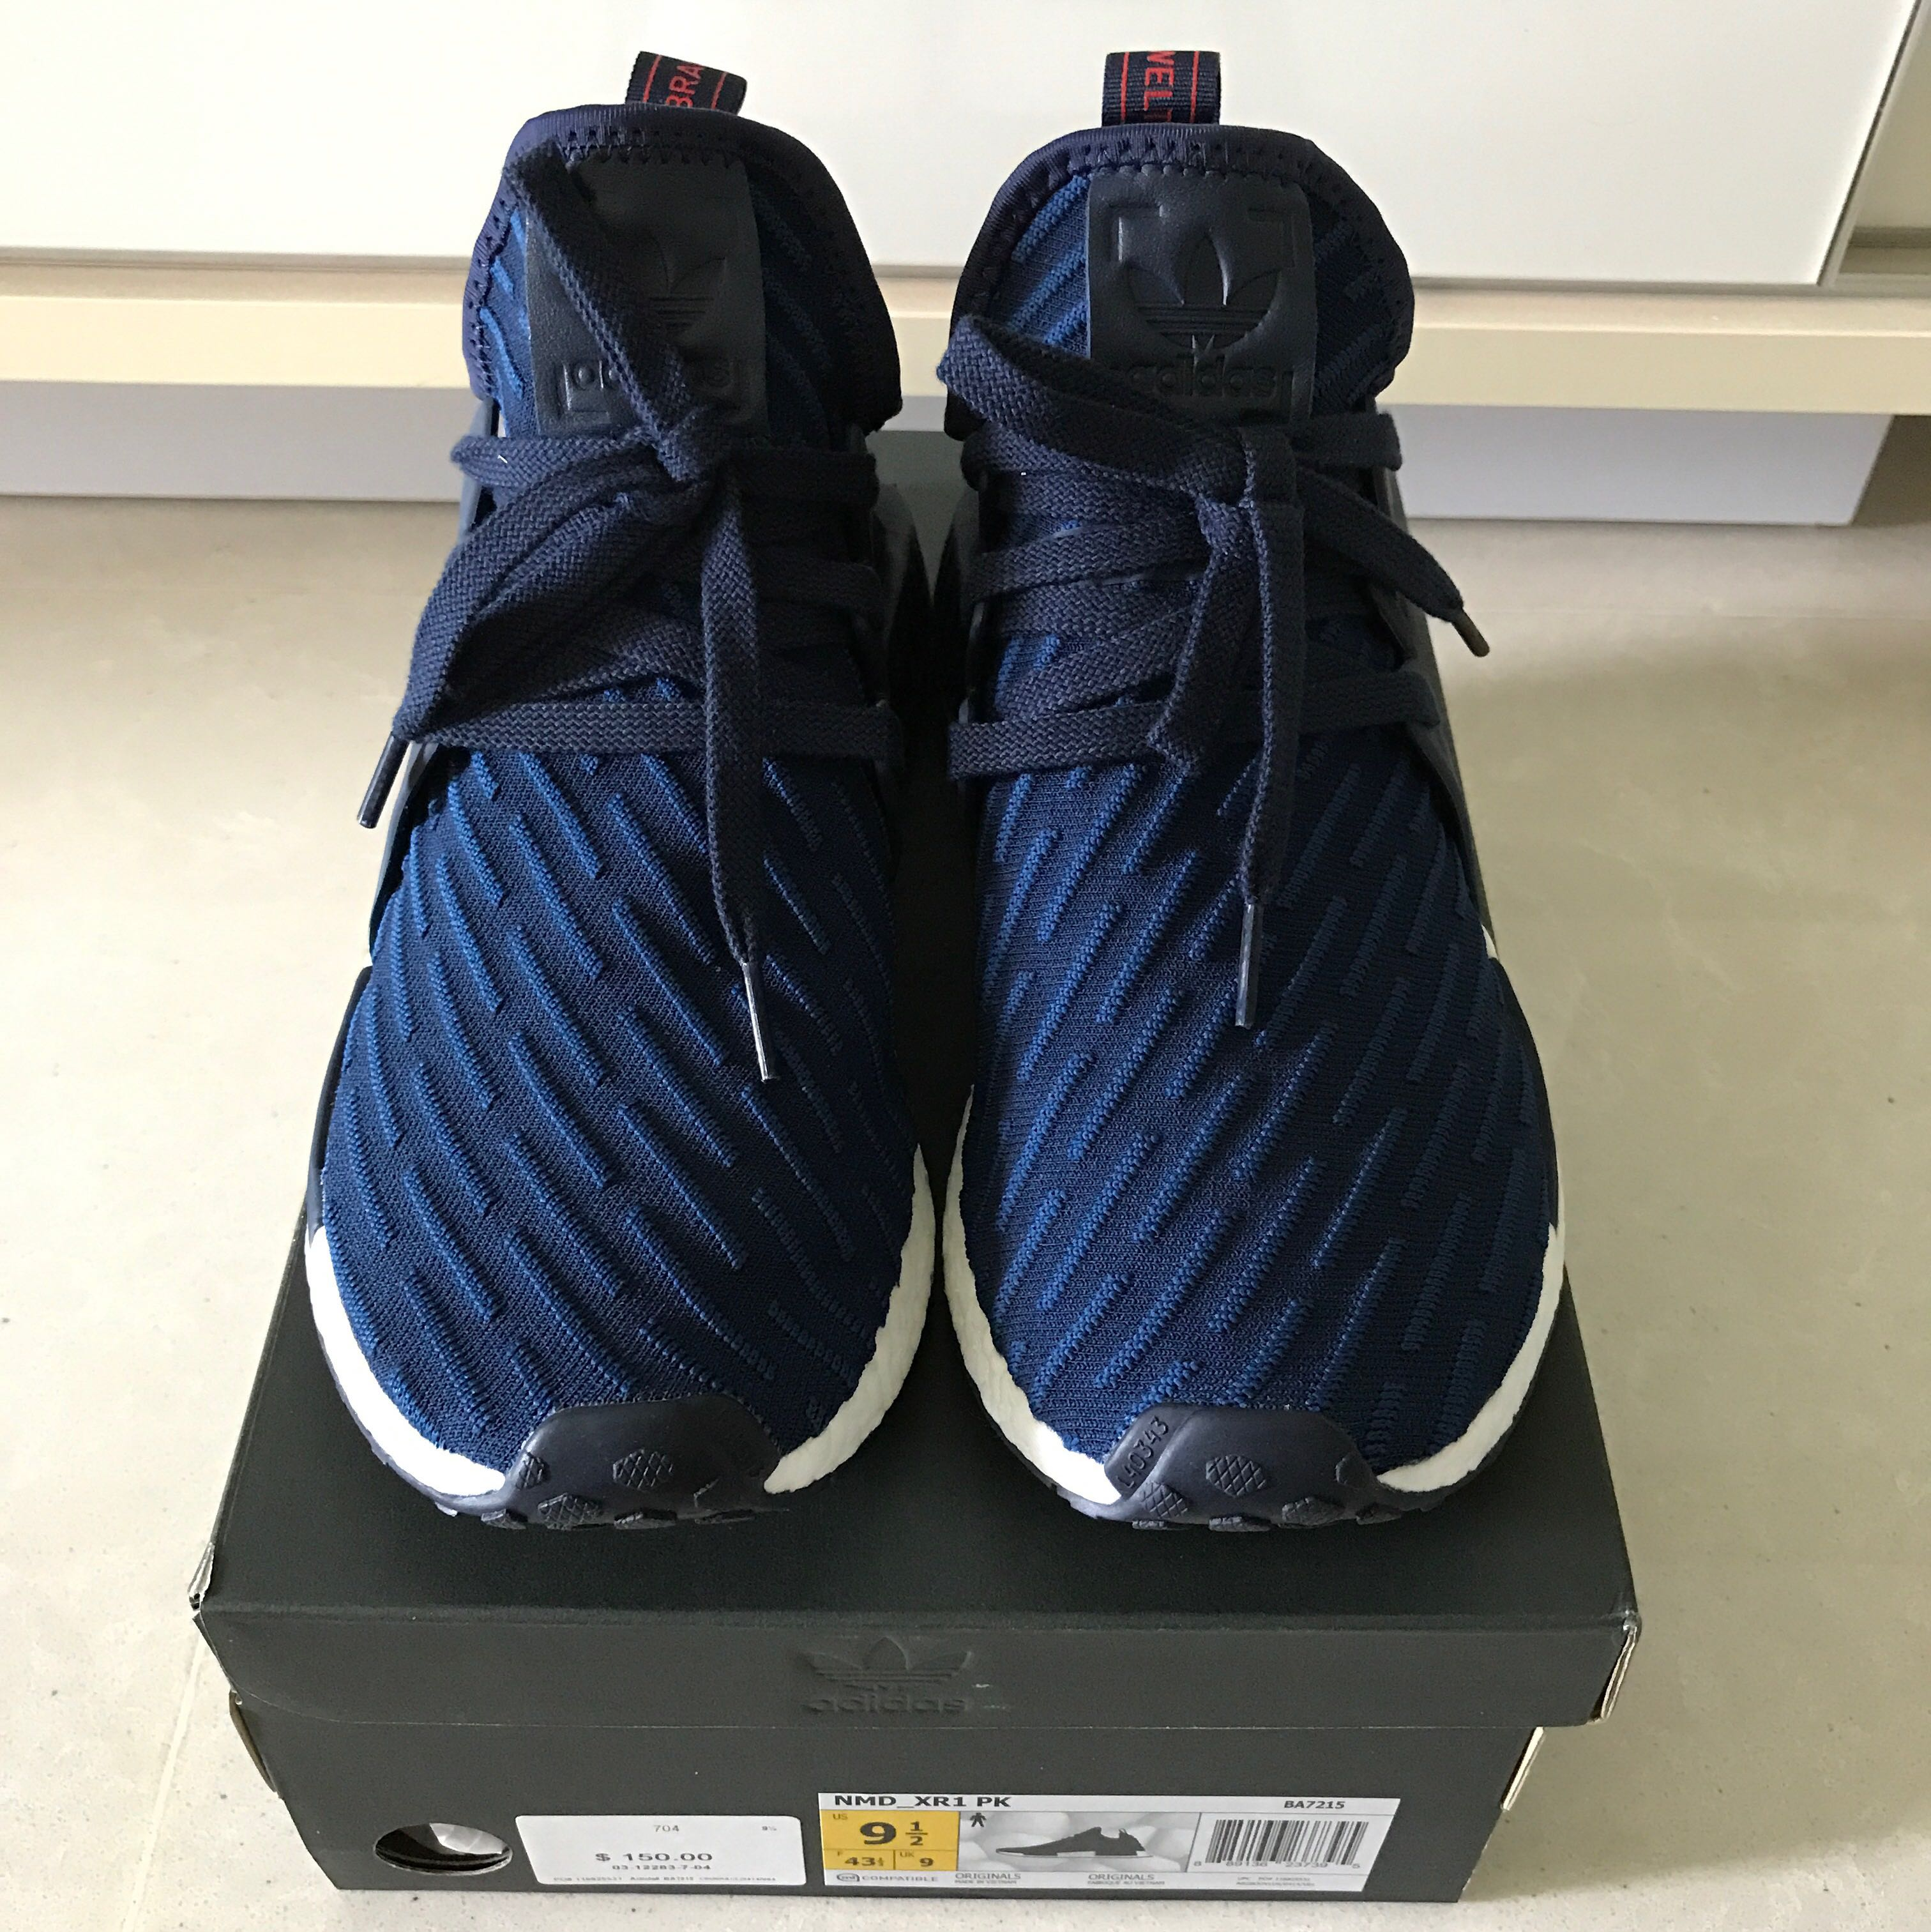 Adidas NMD, Men's Fashion, Footwear, Sneakers on Carousell